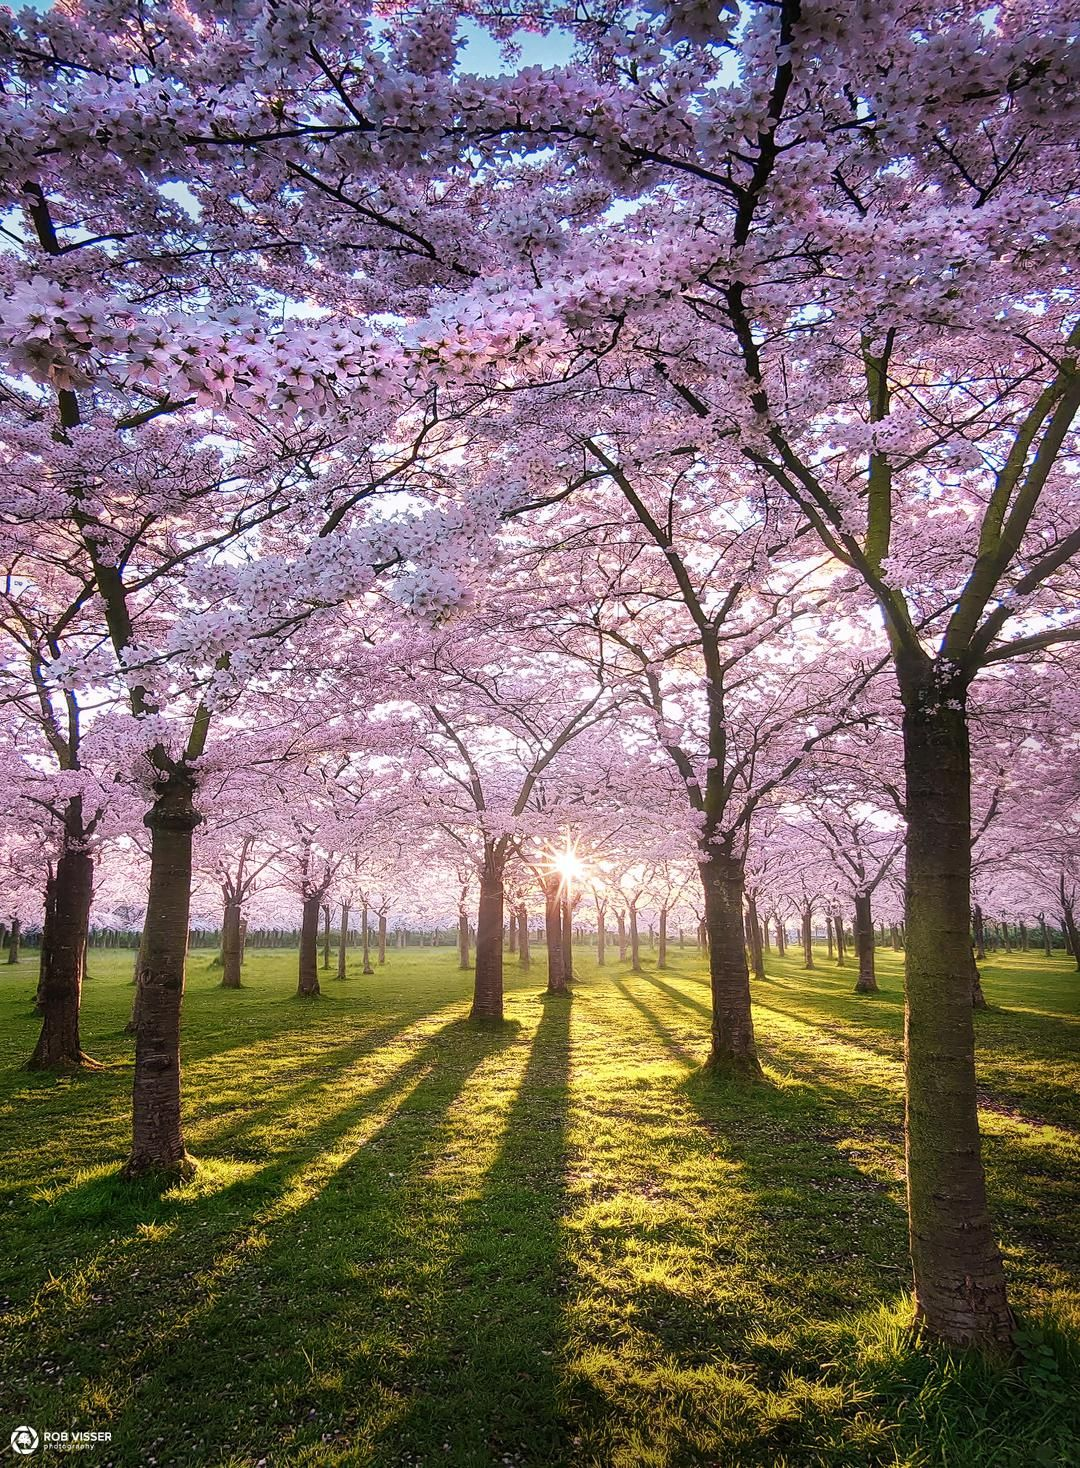 Cherry Blossom Park Amsterdam The Netherlands 1080x1468 Oc Nature Photography Landscape Pict In 2021 Beautiful Landscape Photography Spring Scenery Blossom Trees